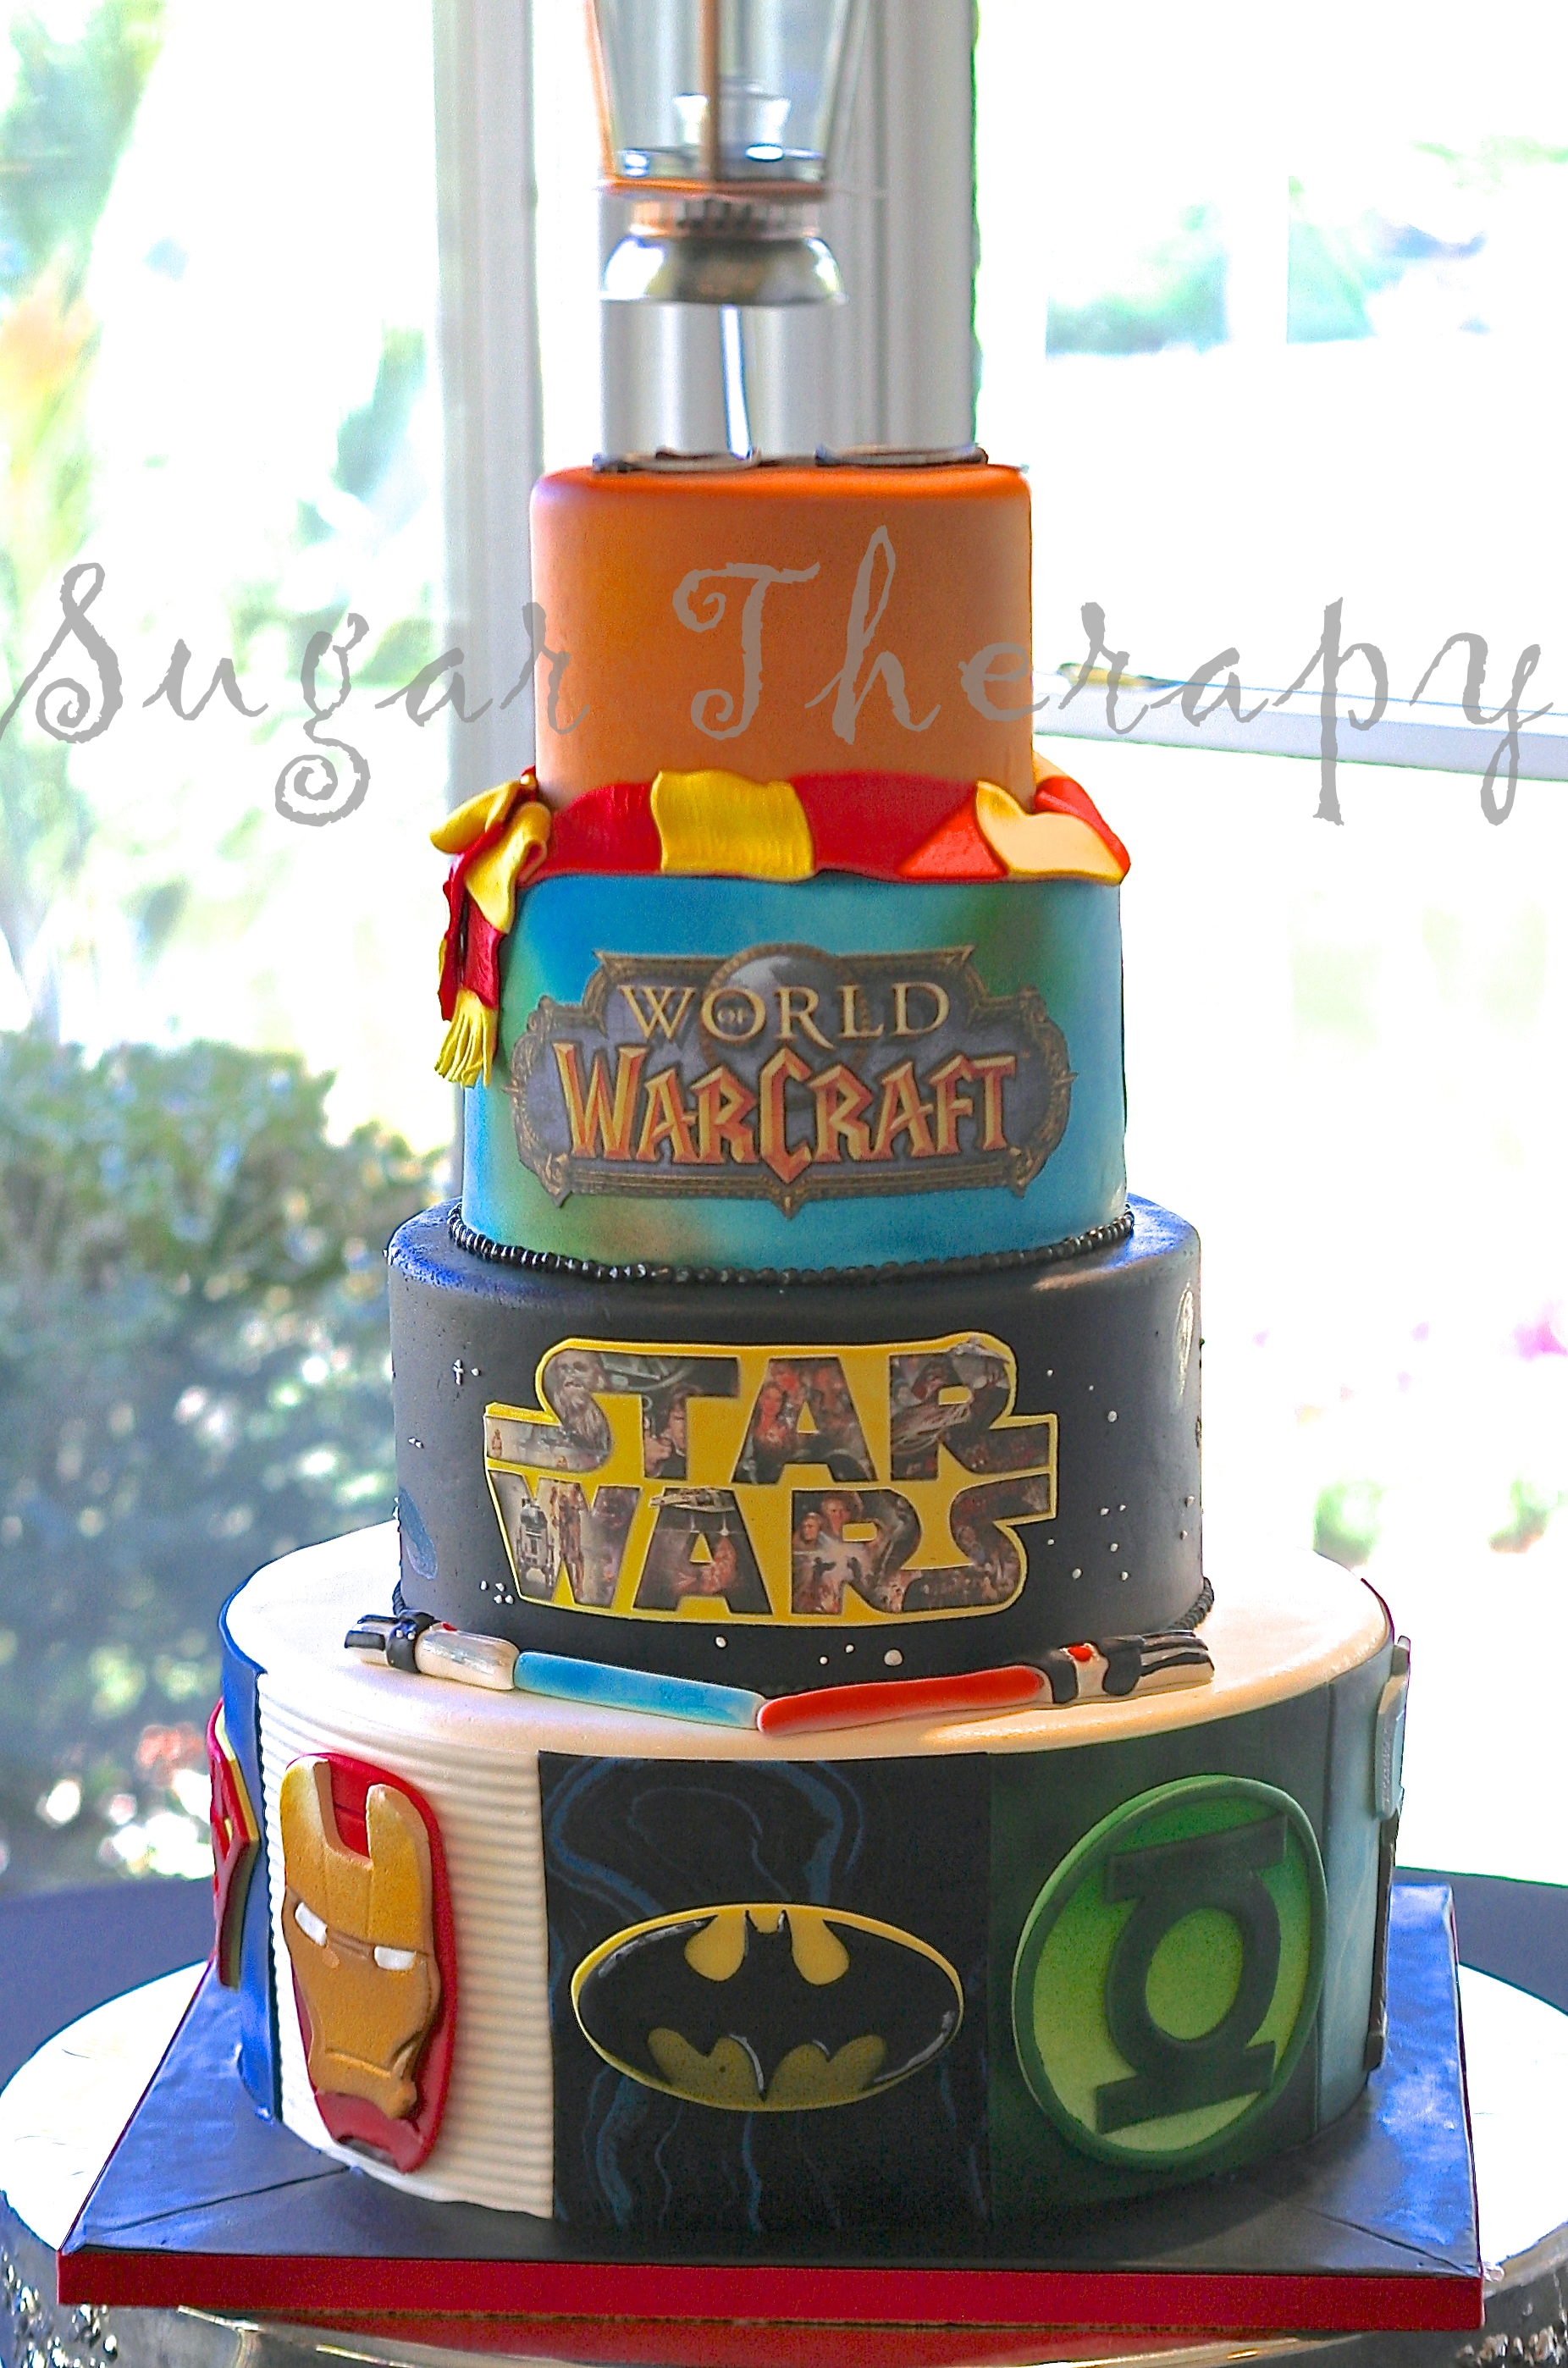 book wedding cakes wars world of warcraft harry potter comic book 2015